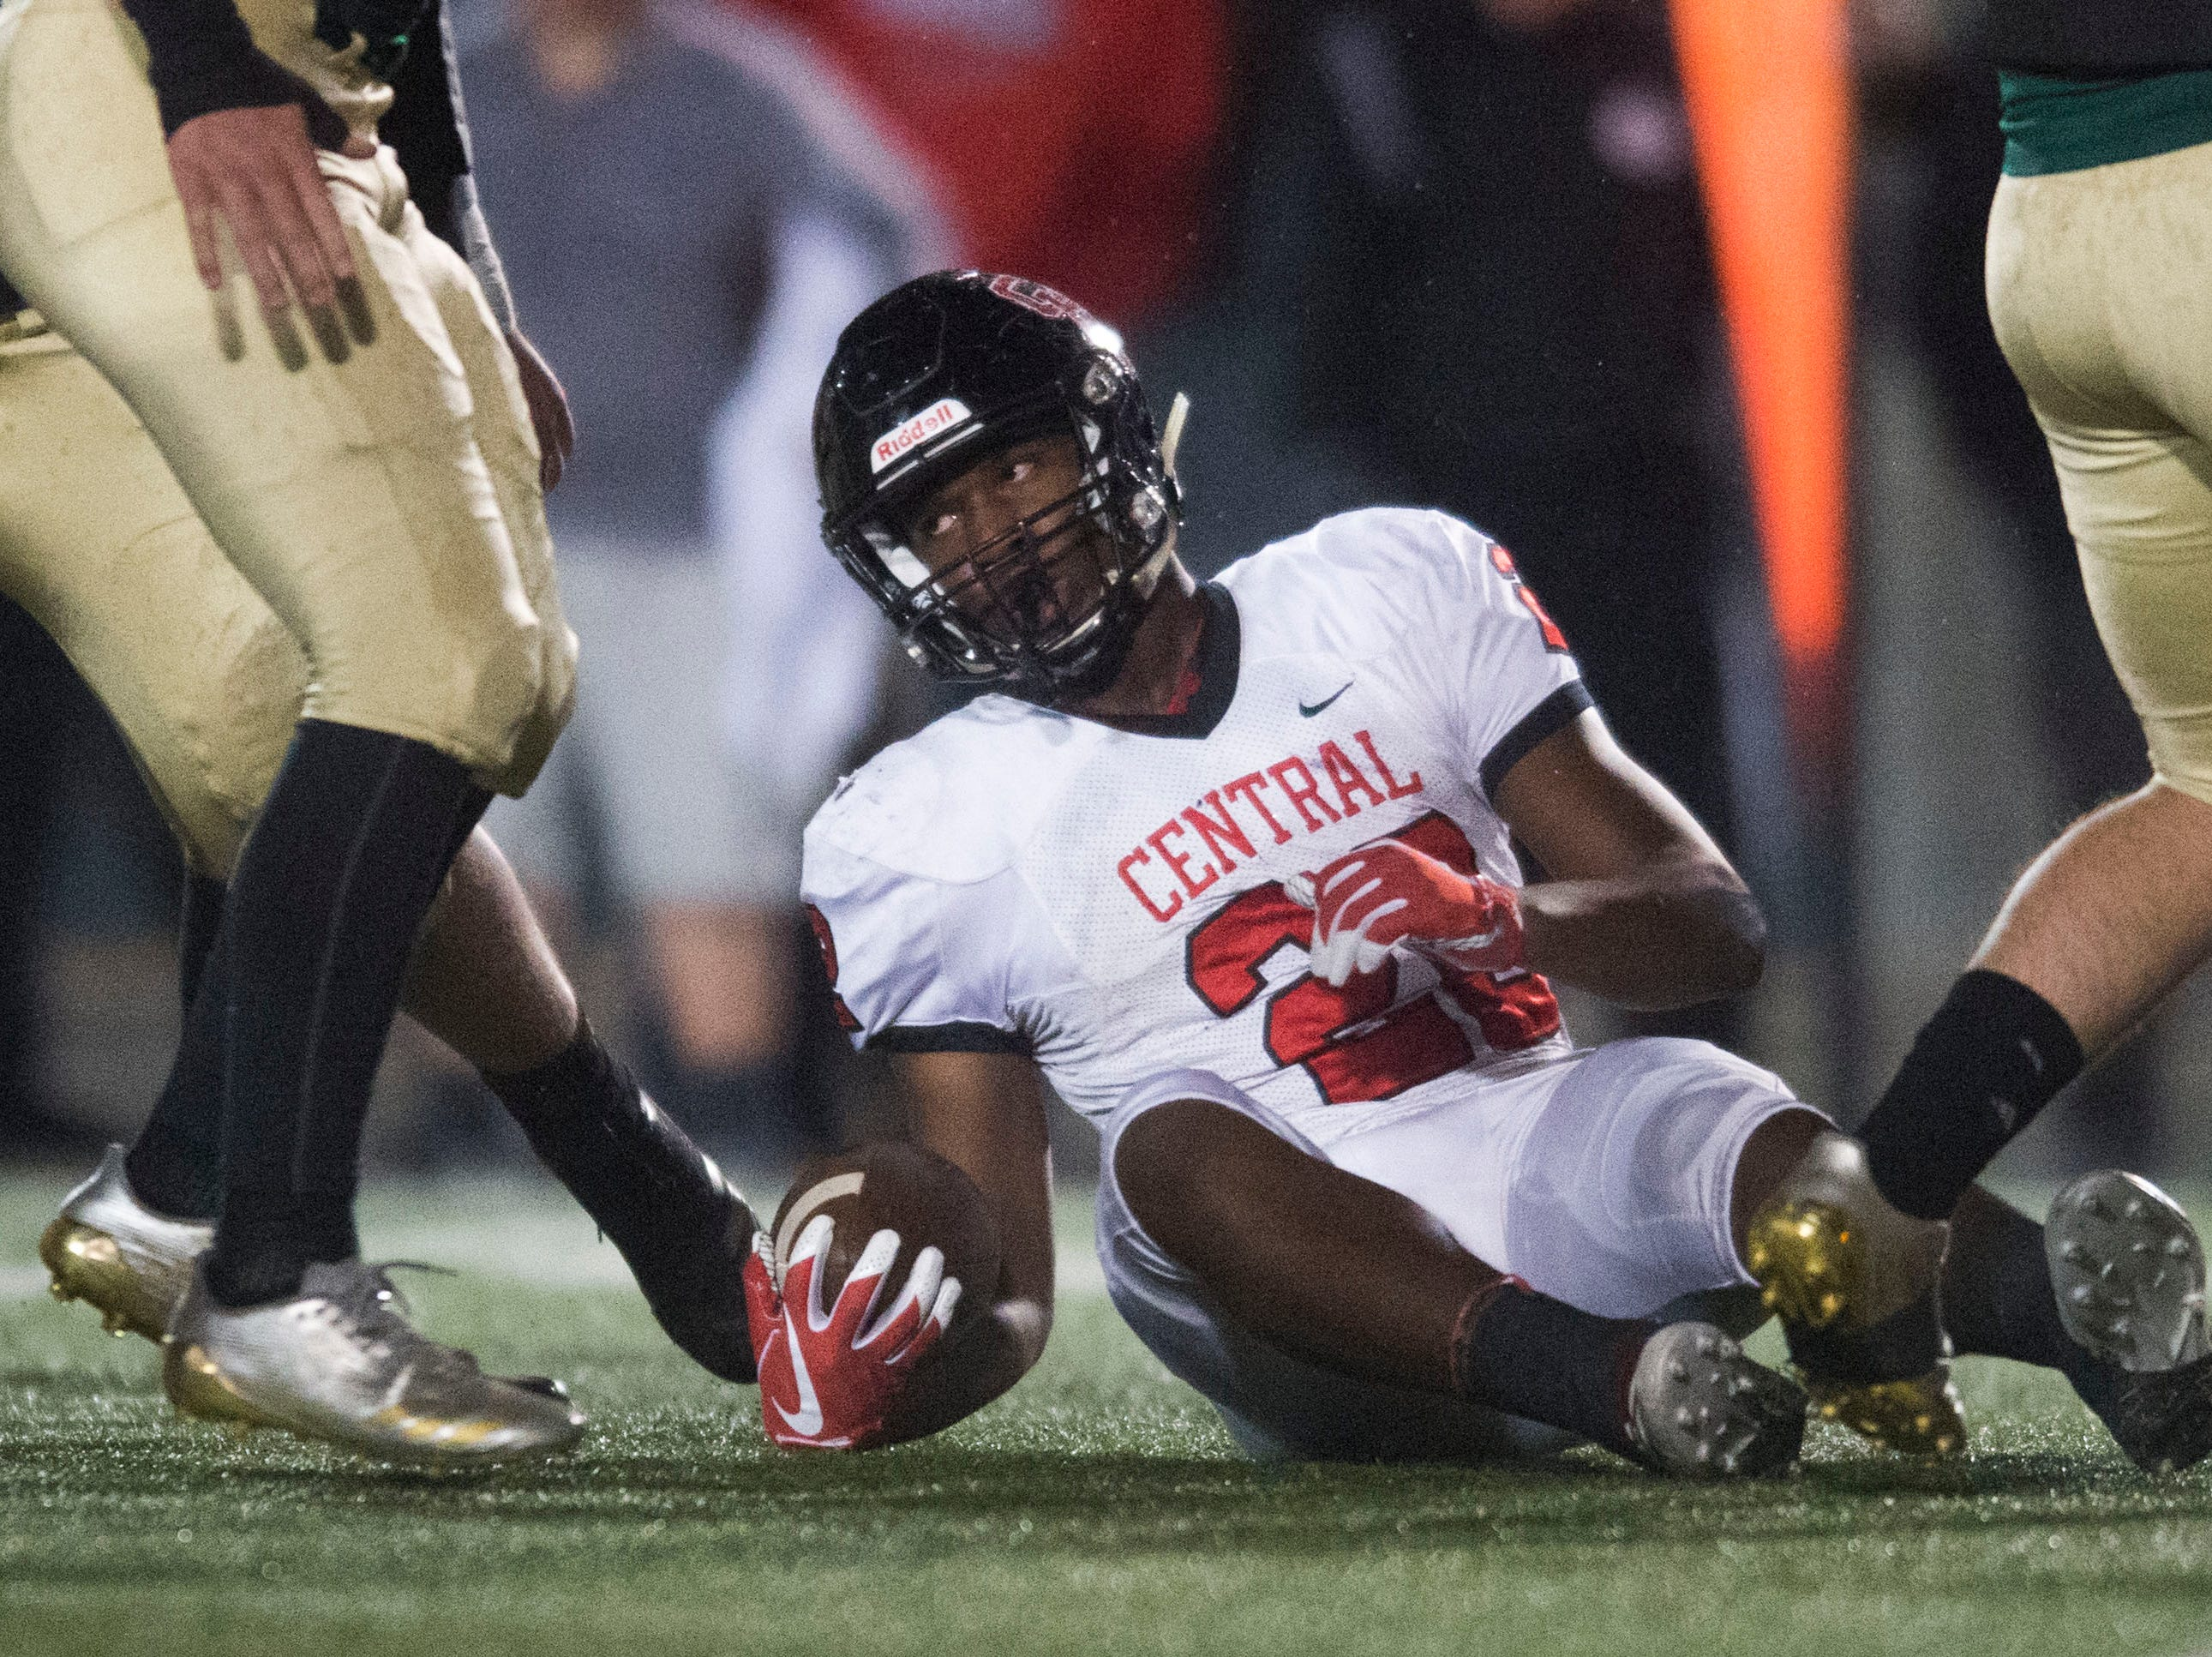 Central's Devone Moss (22) gets off the the ground after a play during a Class 5A semifinal game between Central at Catholic Friday, Nov. 23, 2018. Central defeated Catholic 24-19.